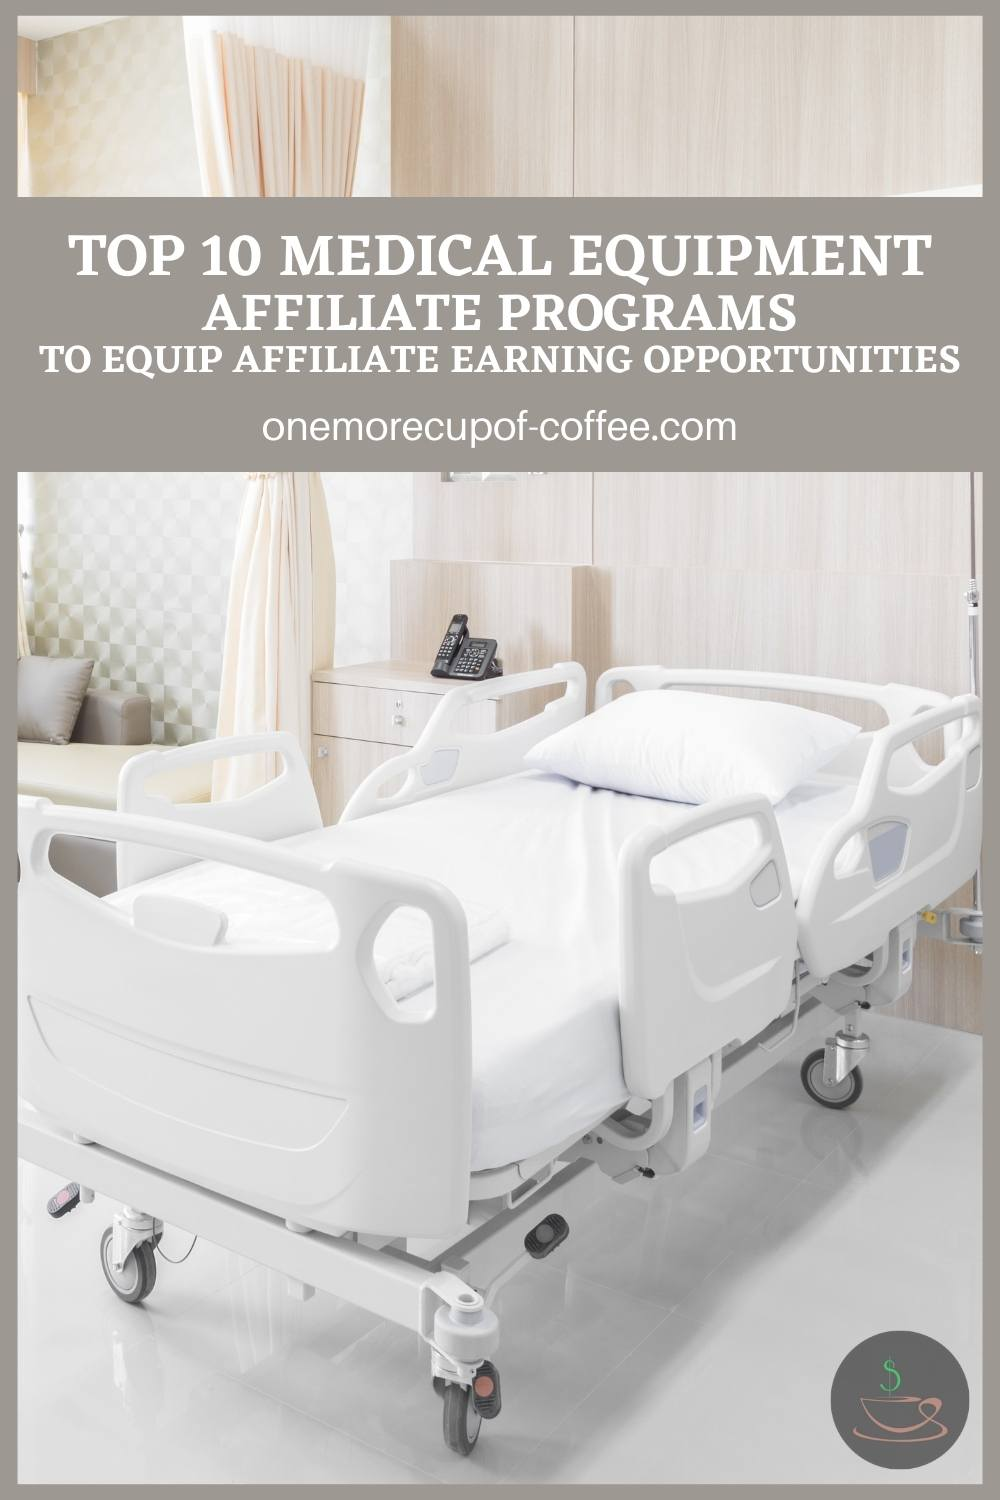 """hospital bed in a room with text overlay """"Top 10 Medical Equipment Affiliate Programs To Equip Affiliate Earning Opportunities"""""""